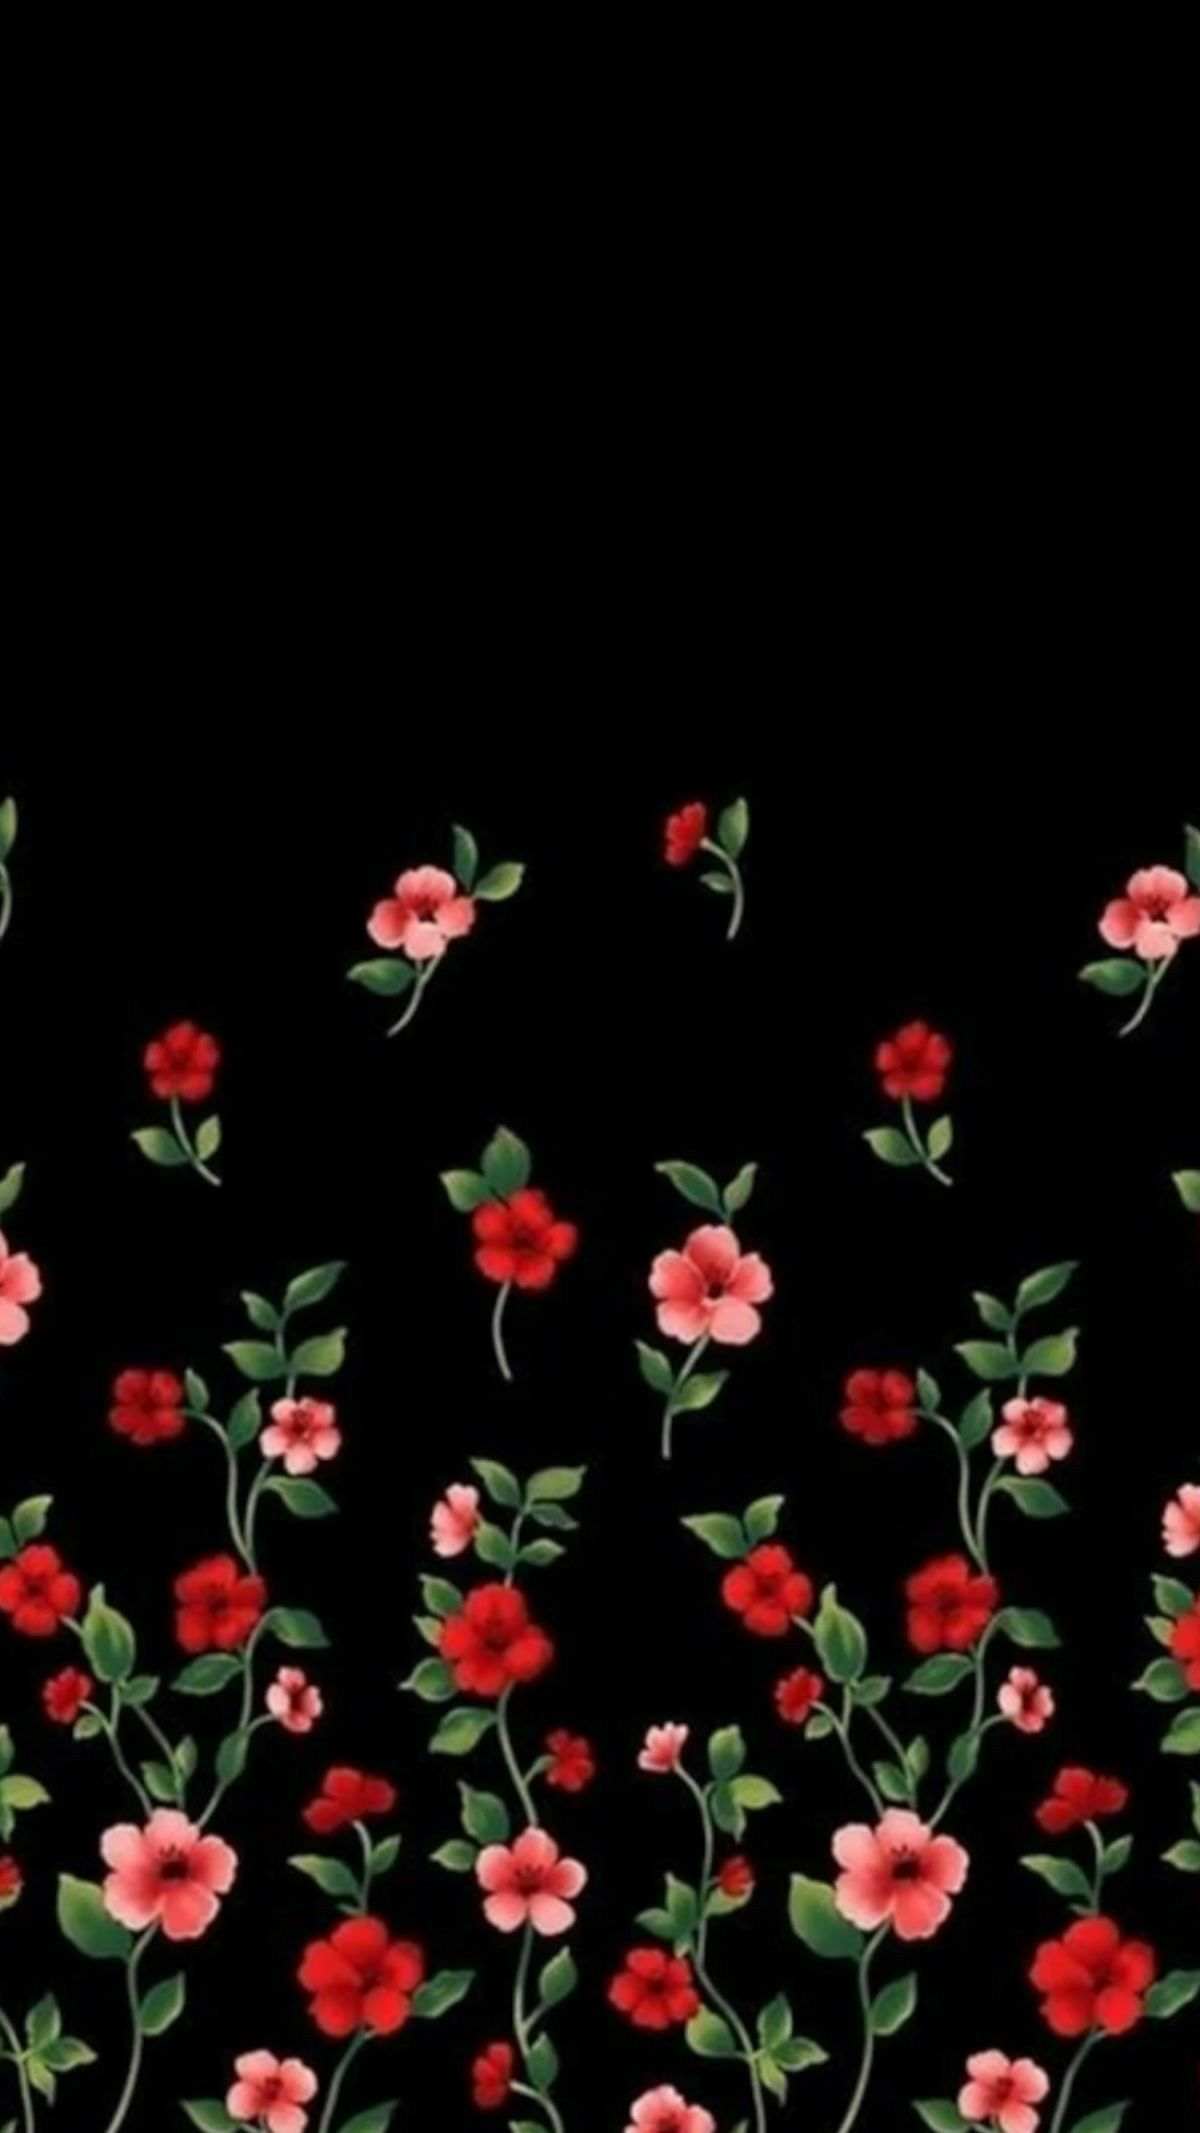 Amoled Floral Wallpaper Background Lock Screen Floral